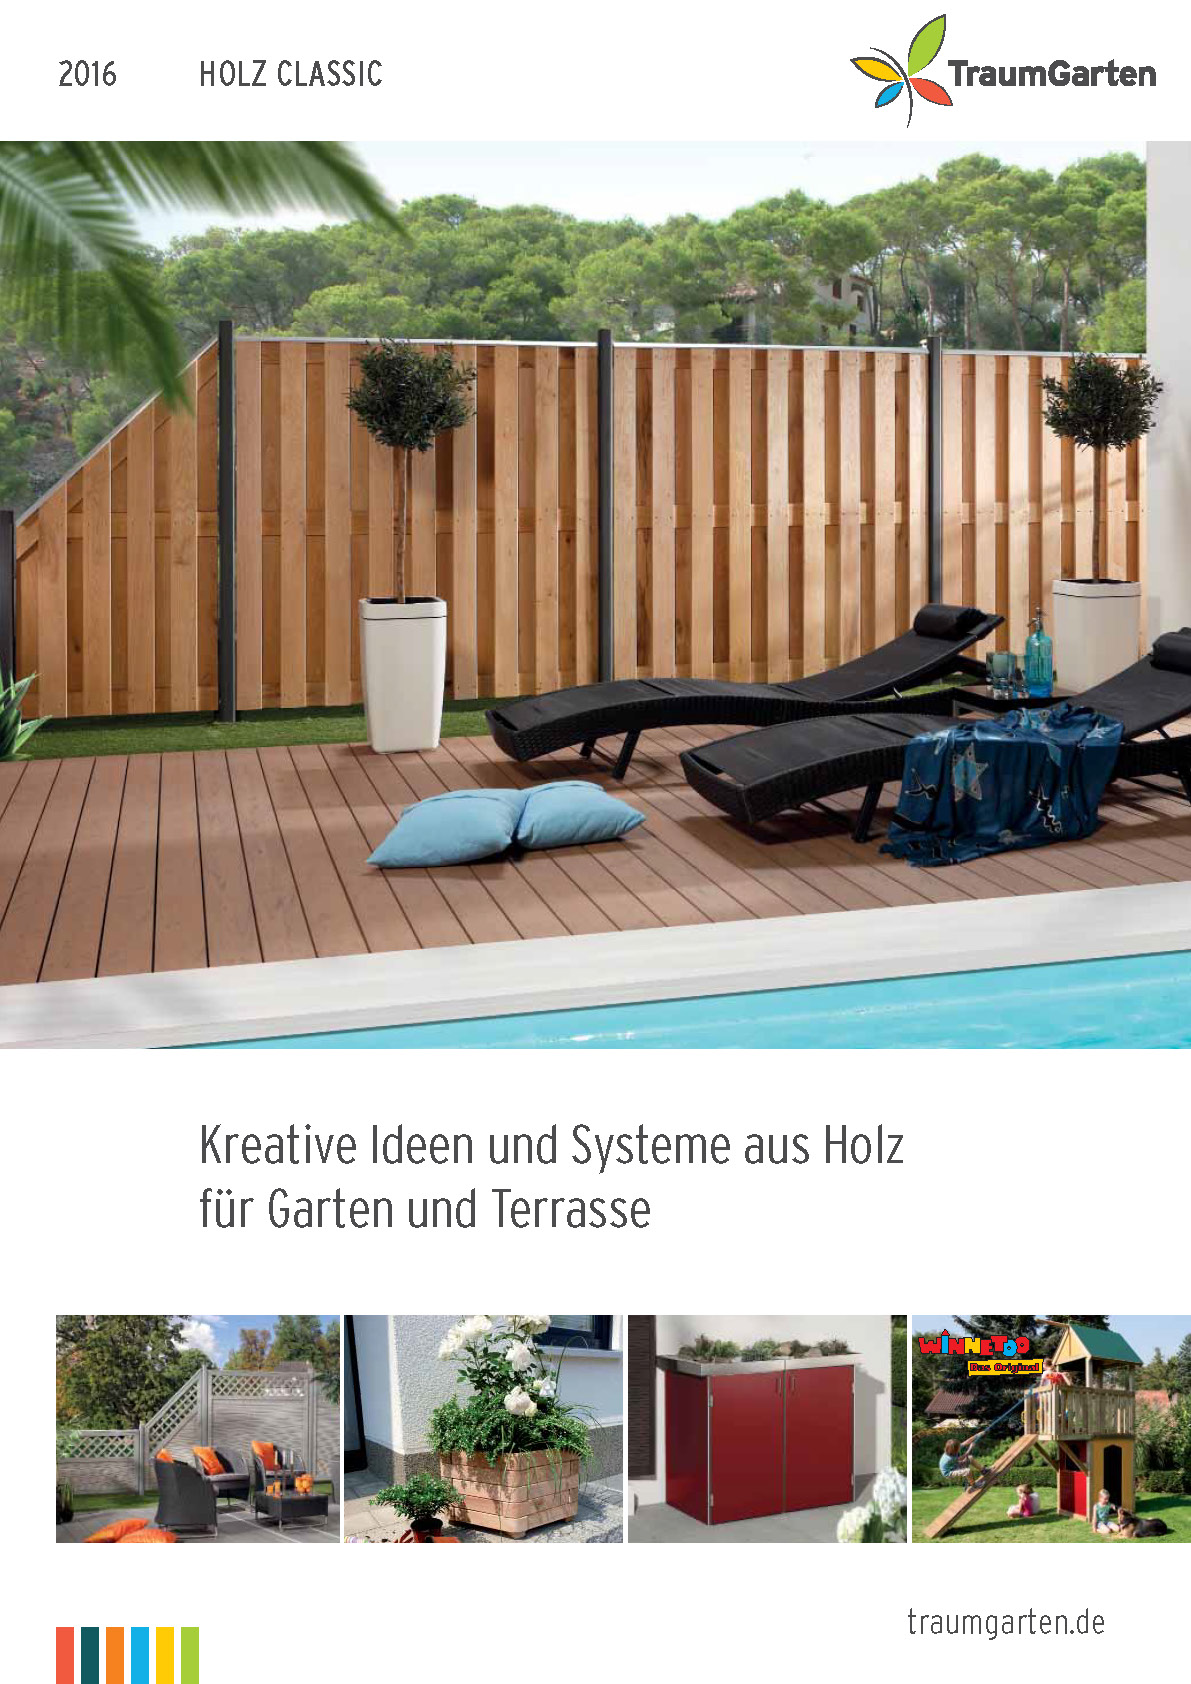 terrassendielen holzdecks wpc kaufen mainz wiesbaden alzey bingen. Black Bedroom Furniture Sets. Home Design Ideas